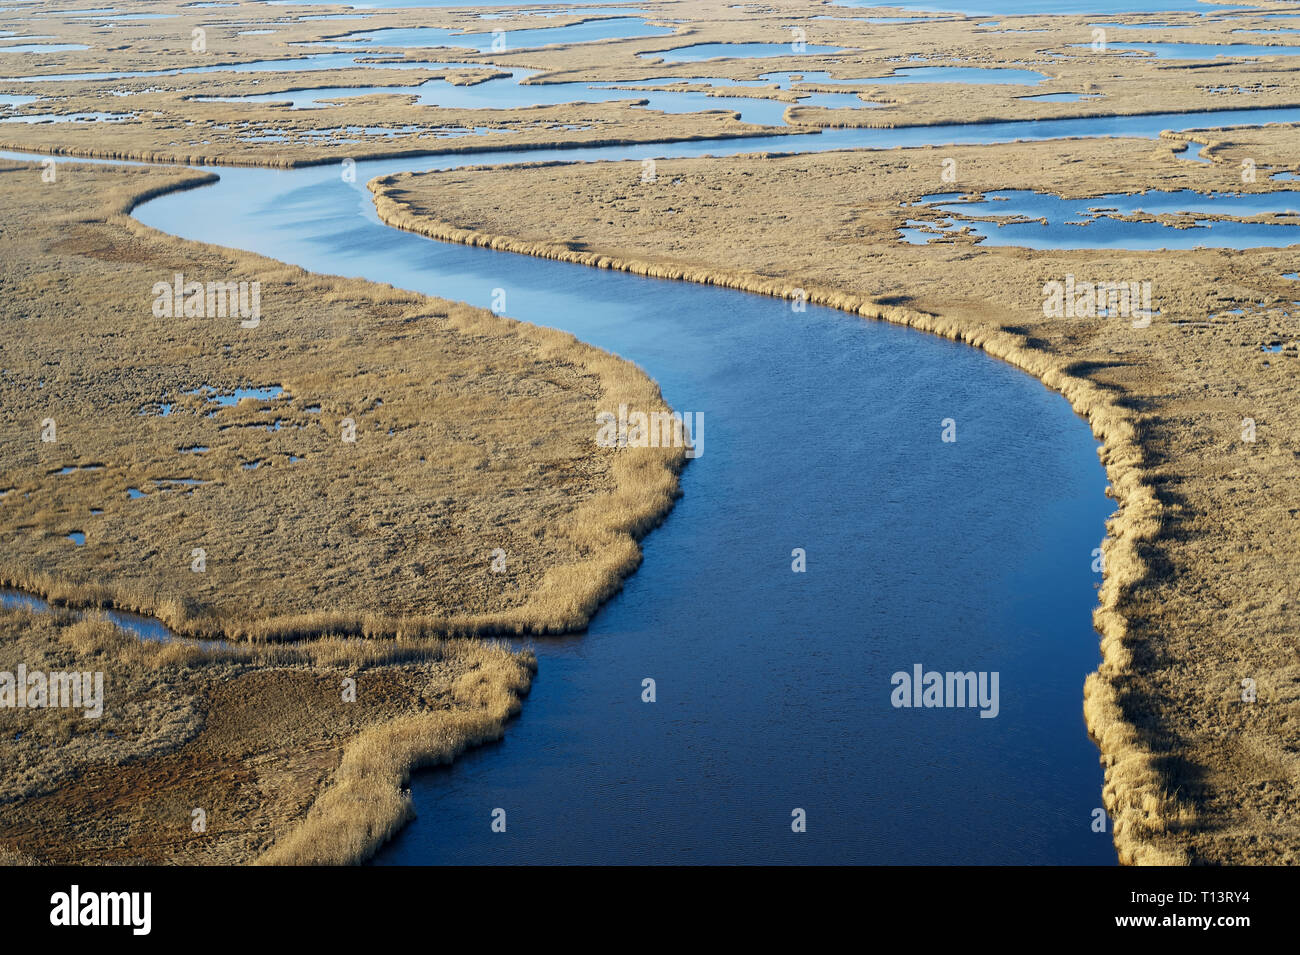 USA, Maryland, Cambridge, Blackwater National Wildlife Refuge, Blackwater River, Blackwater Refuge is experiencing sea level rise that is flooding thi - Stock Image